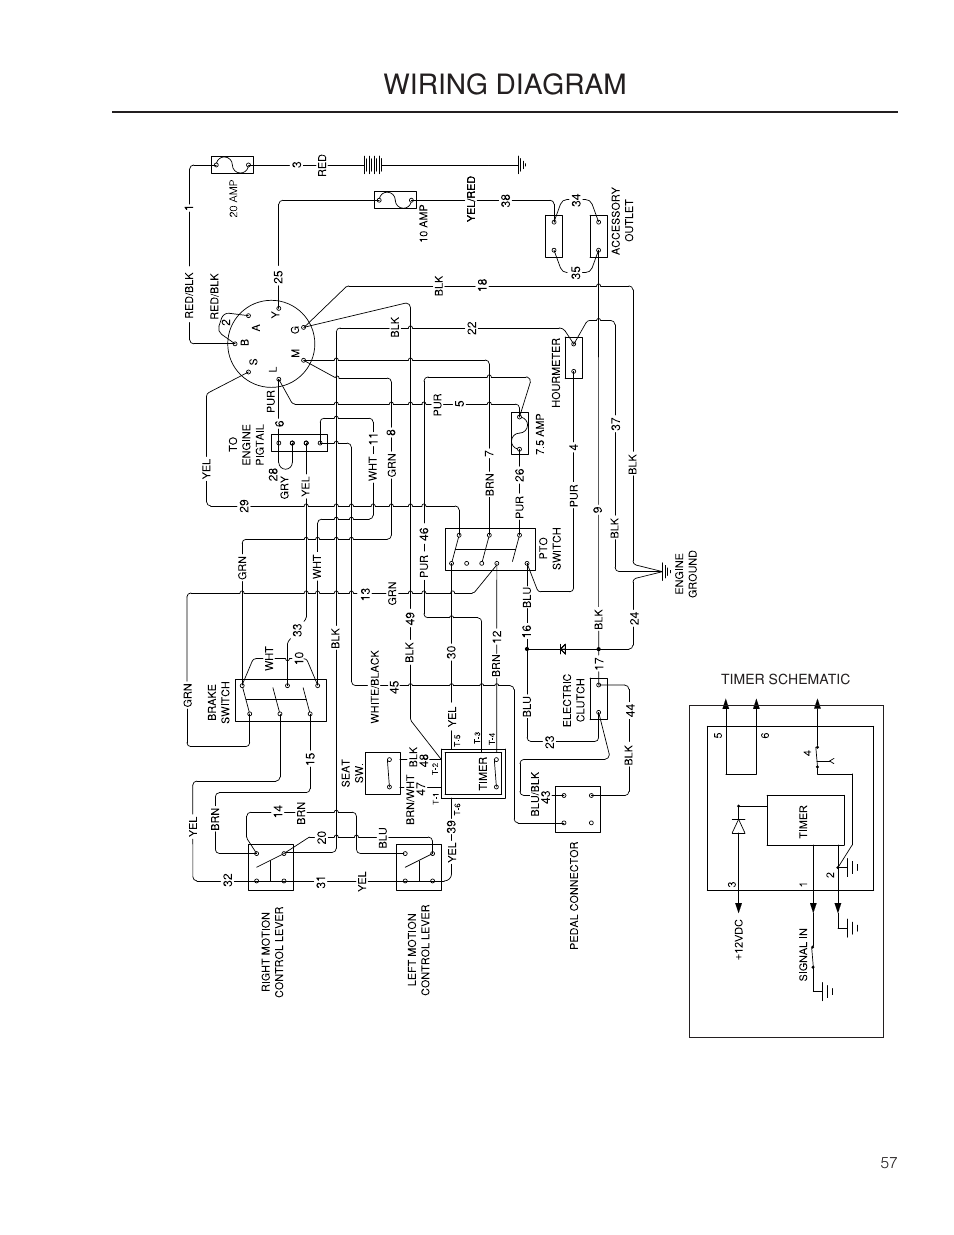 Yazoo Wiring Diagram And Schematics Grasshopper Mower Diagrams Kees Zpkw5426 User Manual Page 57 72